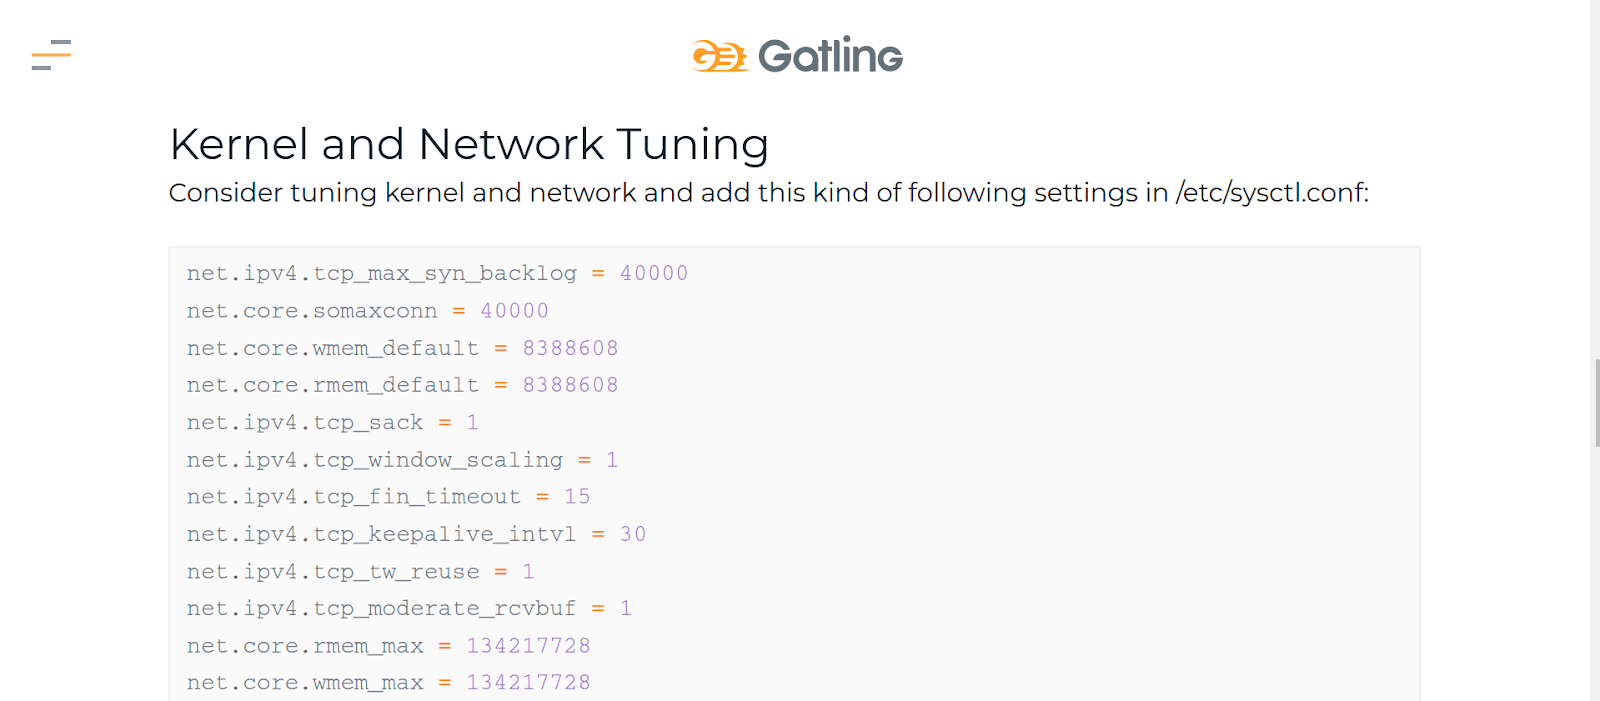 Gatling tutorial for the network in Linux